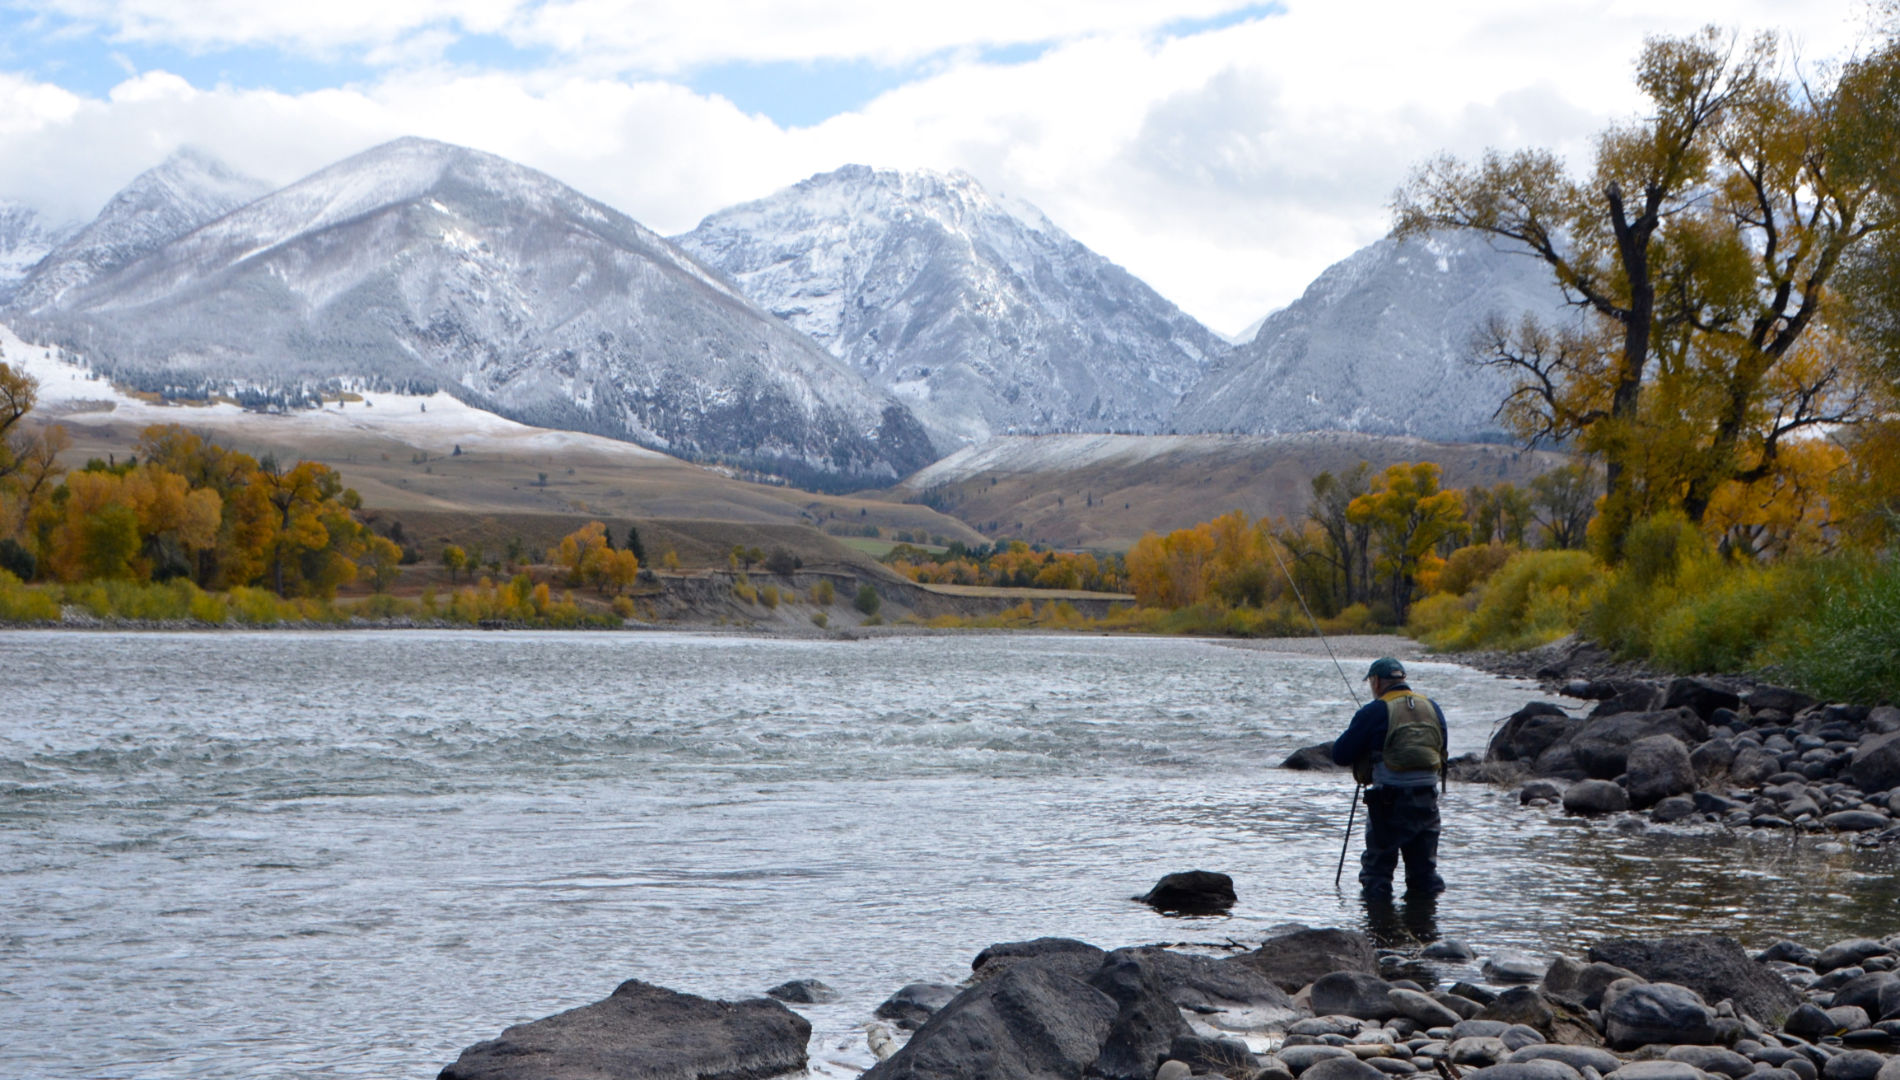 Wade Fishing on the Yellowstone River in October